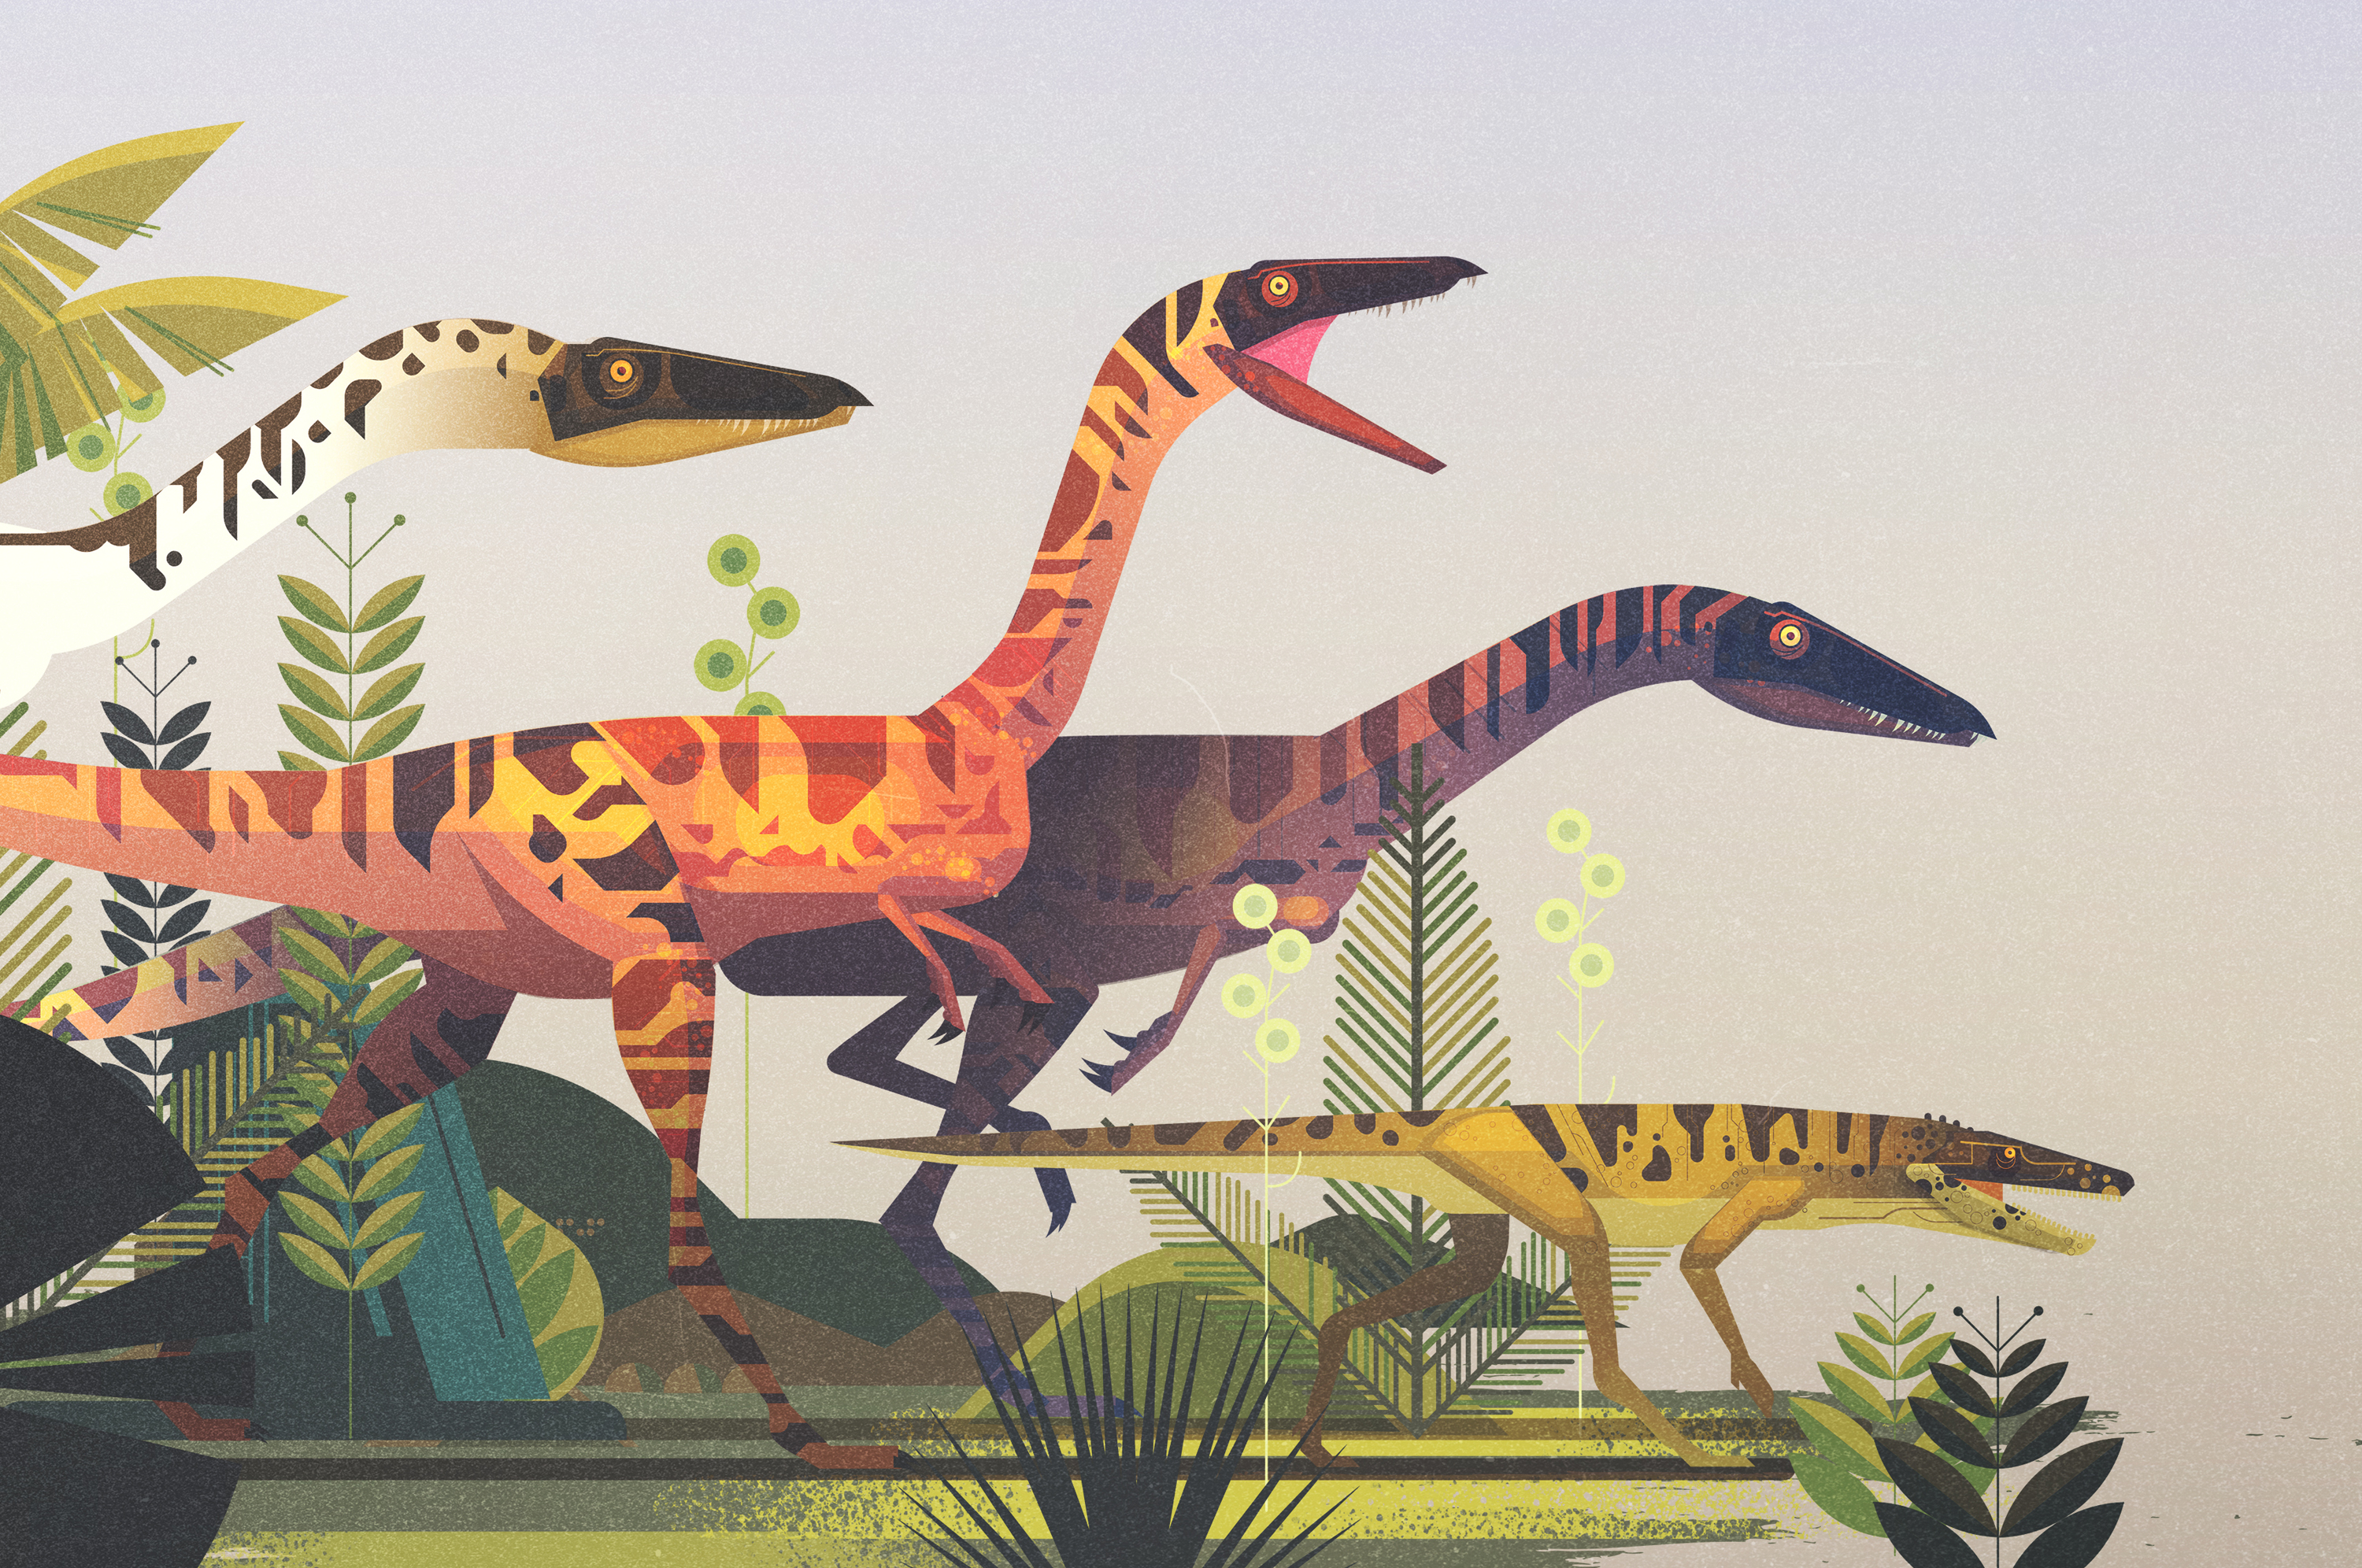 James Gilleard - The Dinosaur Atlas